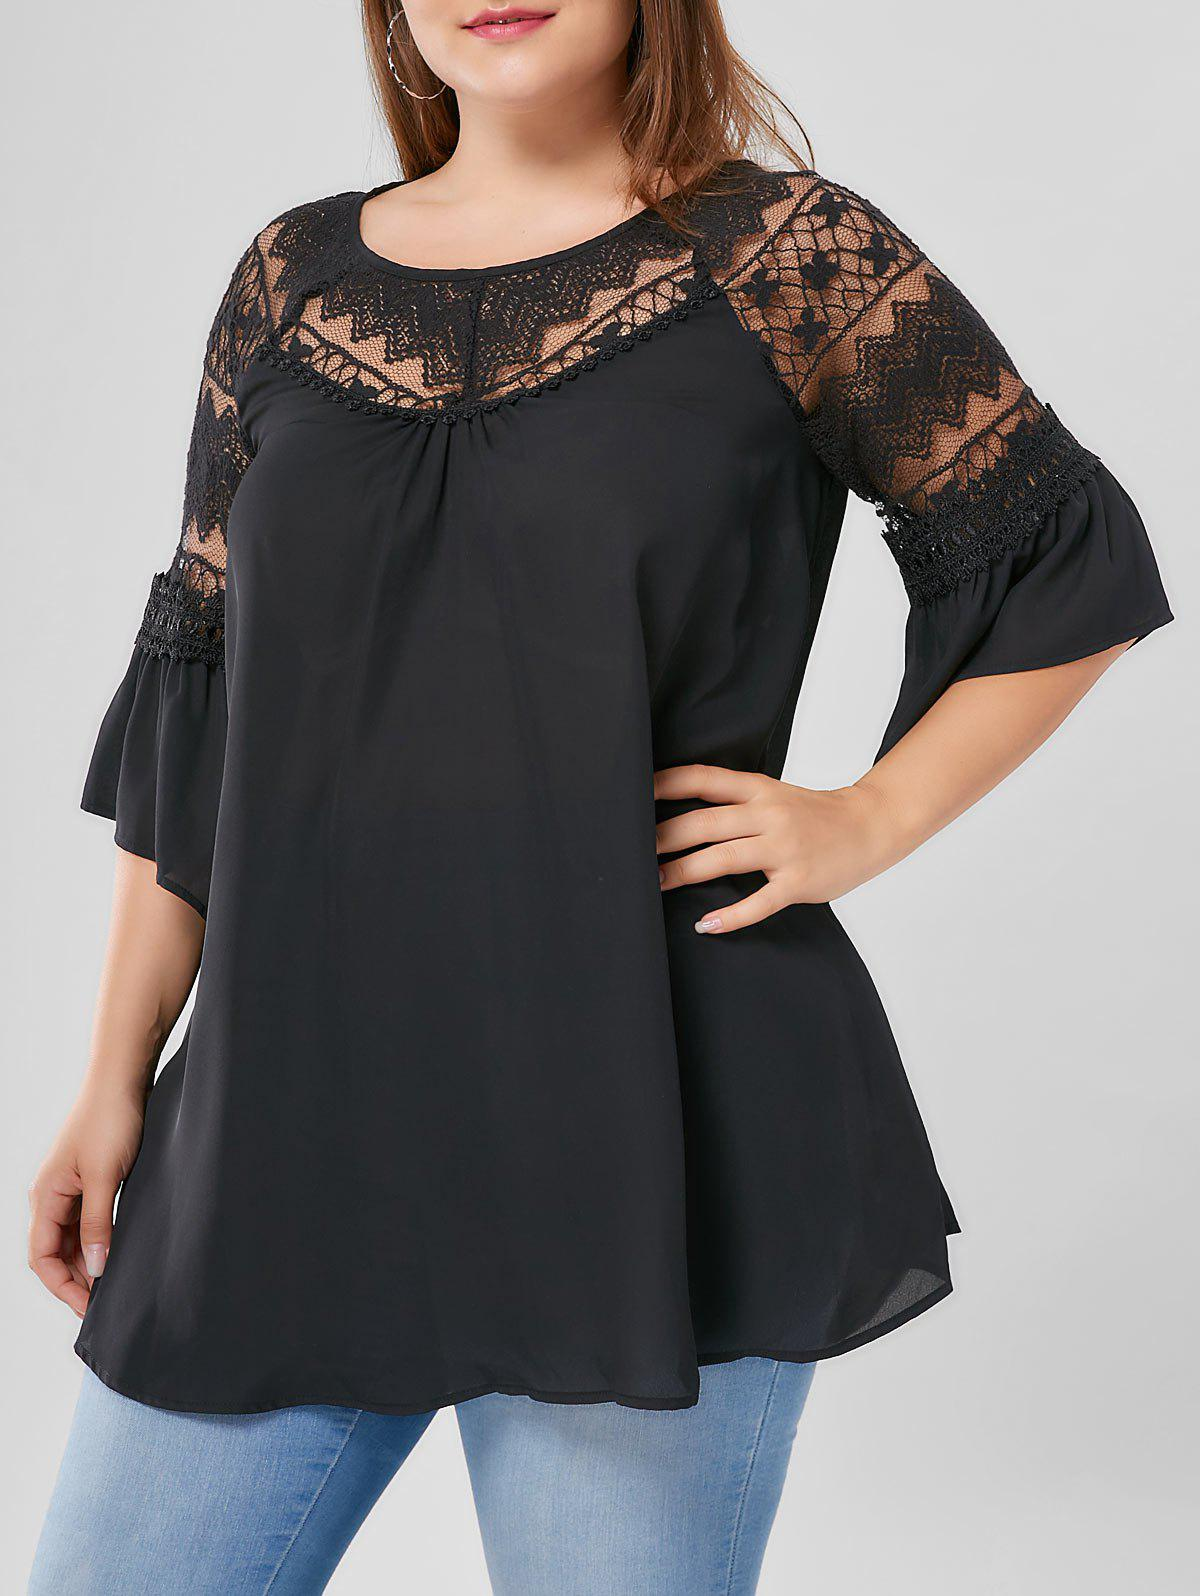 Plus Size Flare Sleeve Lace Yoke BlouseWOMEN<br><br>Size: XL; Color: BLACK; Material: Polyester; Shirt Length: Long; Sleeve Length: Half; Collar: Round Neck; Style: Fashion; Season: Fall,Spring,Summer; Embellishment: Lace; Pattern Type: Solid; Weight: 0.2200kg; Package Contents: 1 x Blouse;